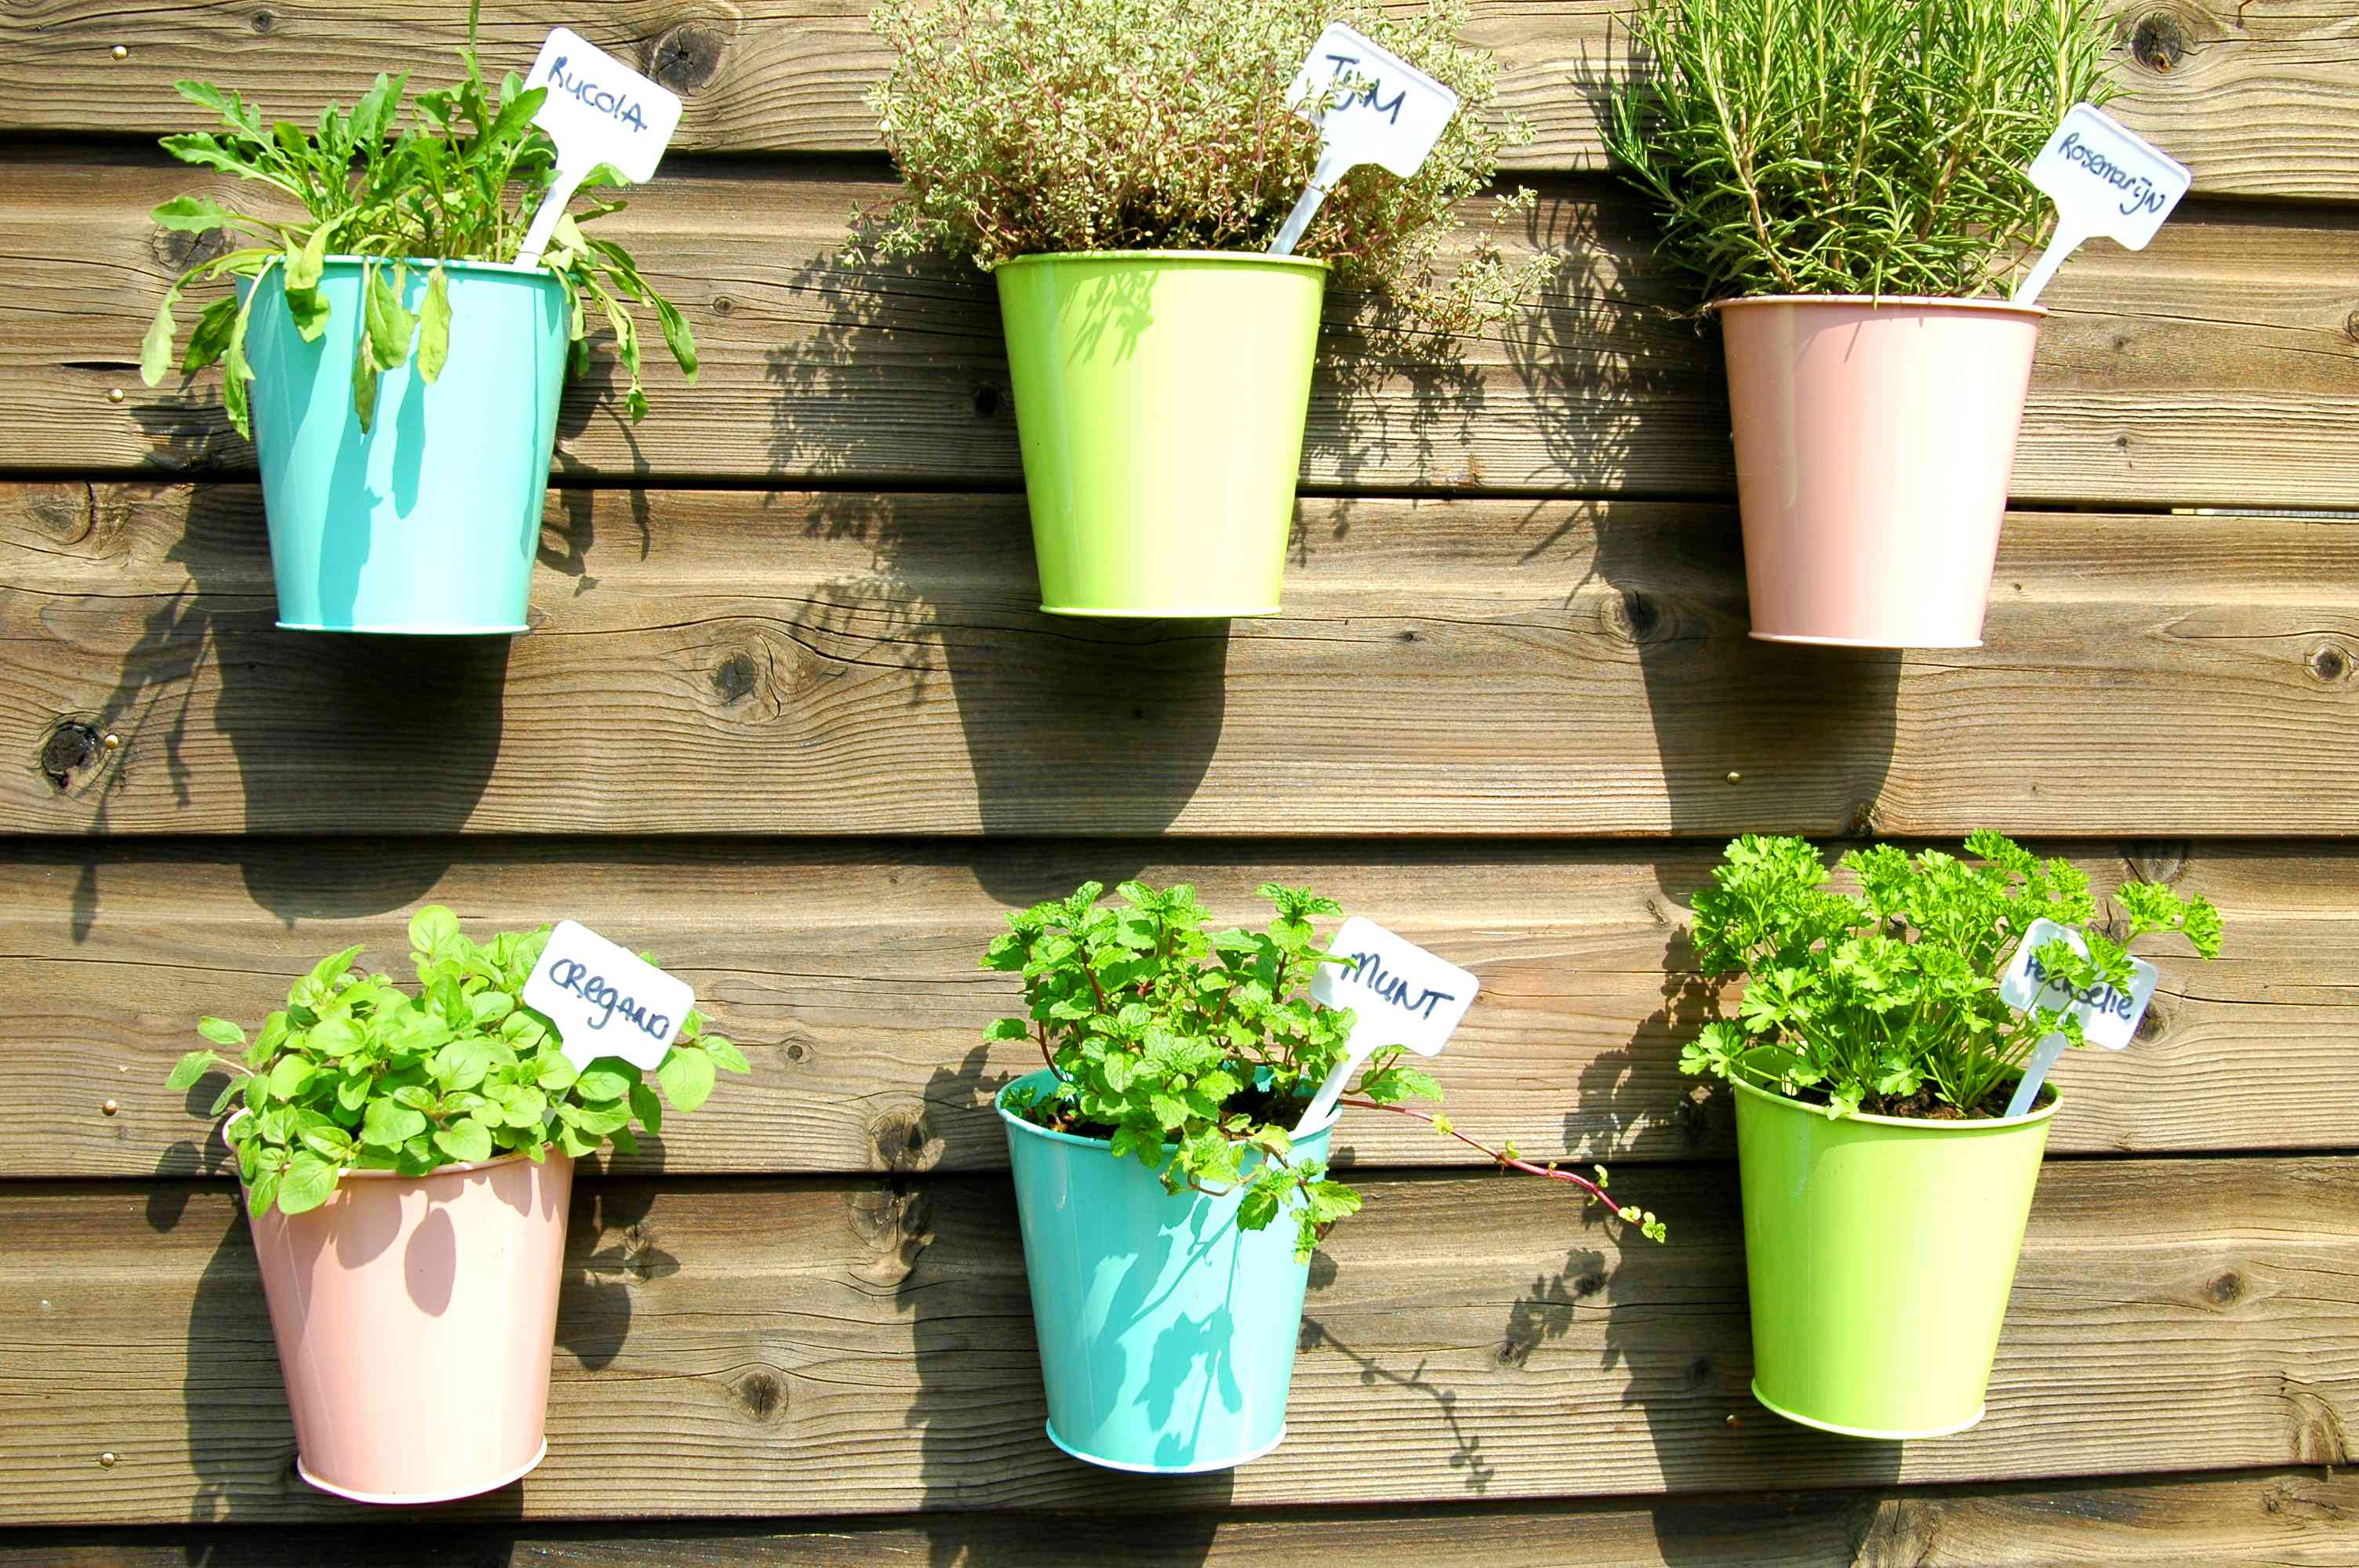 culinary herbs with labels in pastel pots mounted on wooden outdoor wall